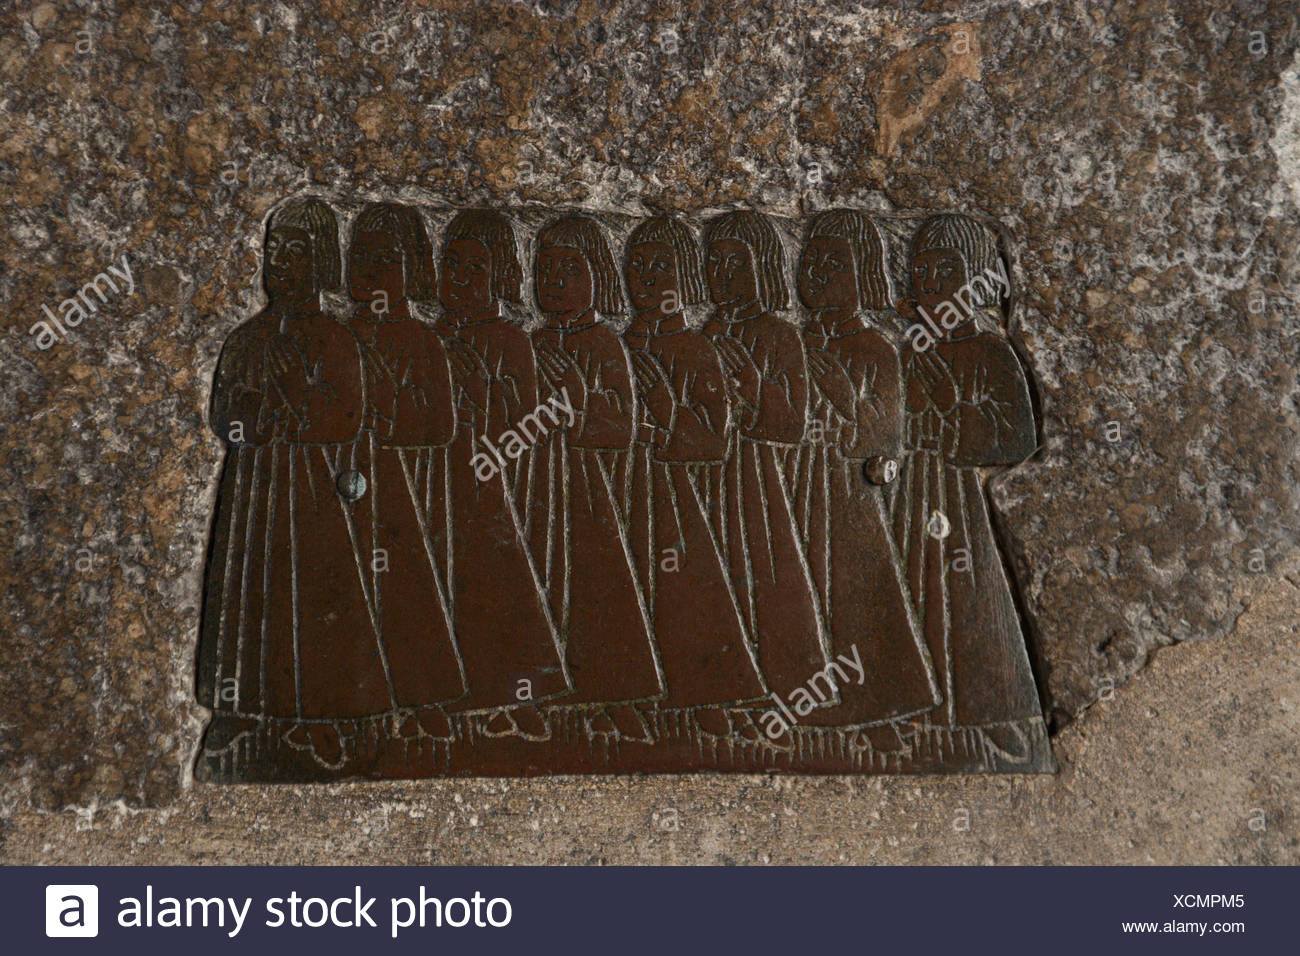 England, Cotswolds, Northleach, Church of St. Peter and St. Paul, brass figures on stone tomb - Stock Image